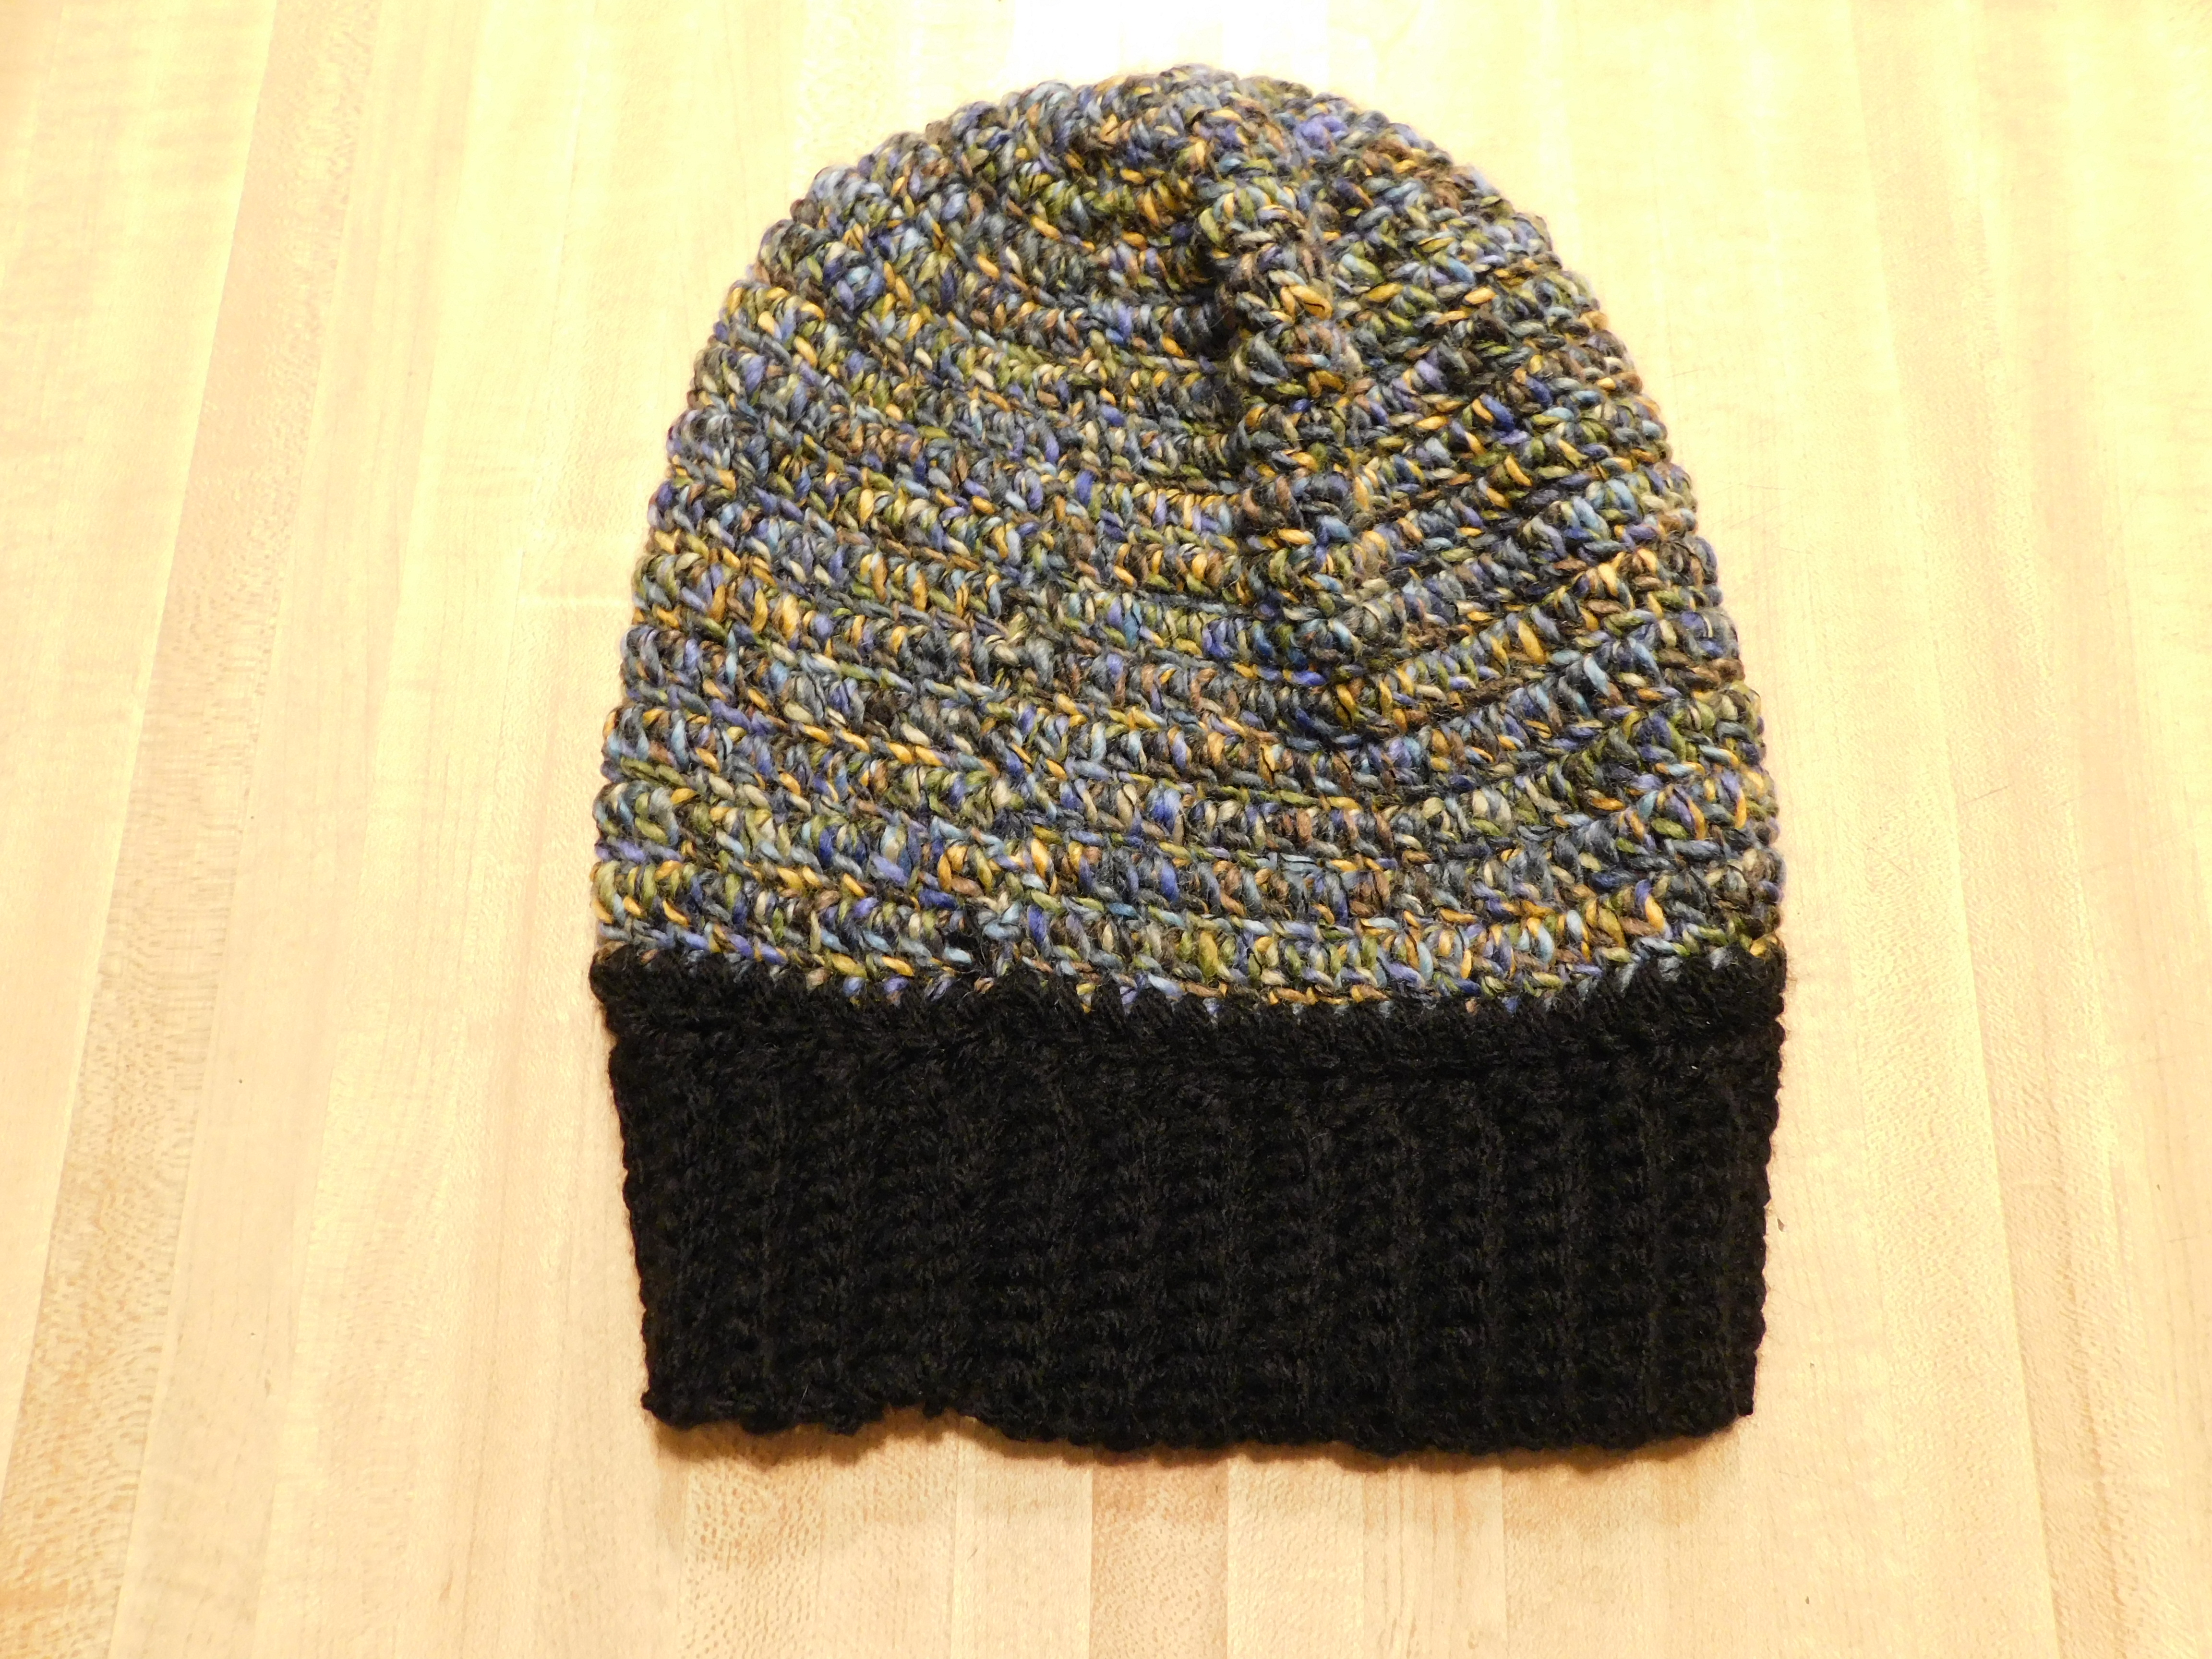 Crocheted Hat #30